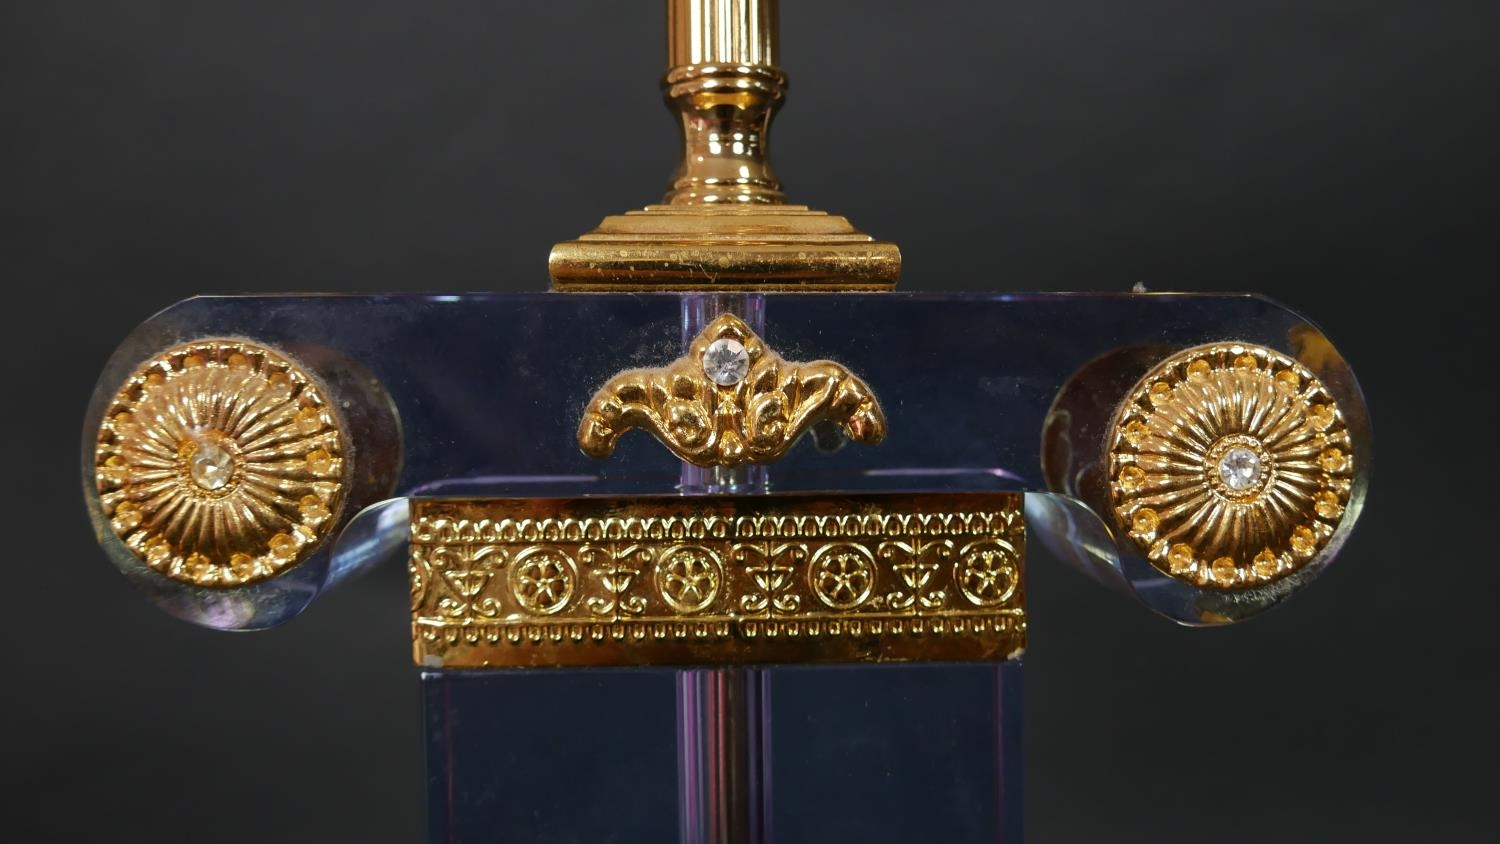 A Neoclassical style glass table lamp with gilt metal mounts resting on scrolling supports. H.49.5cm - Image 3 of 5